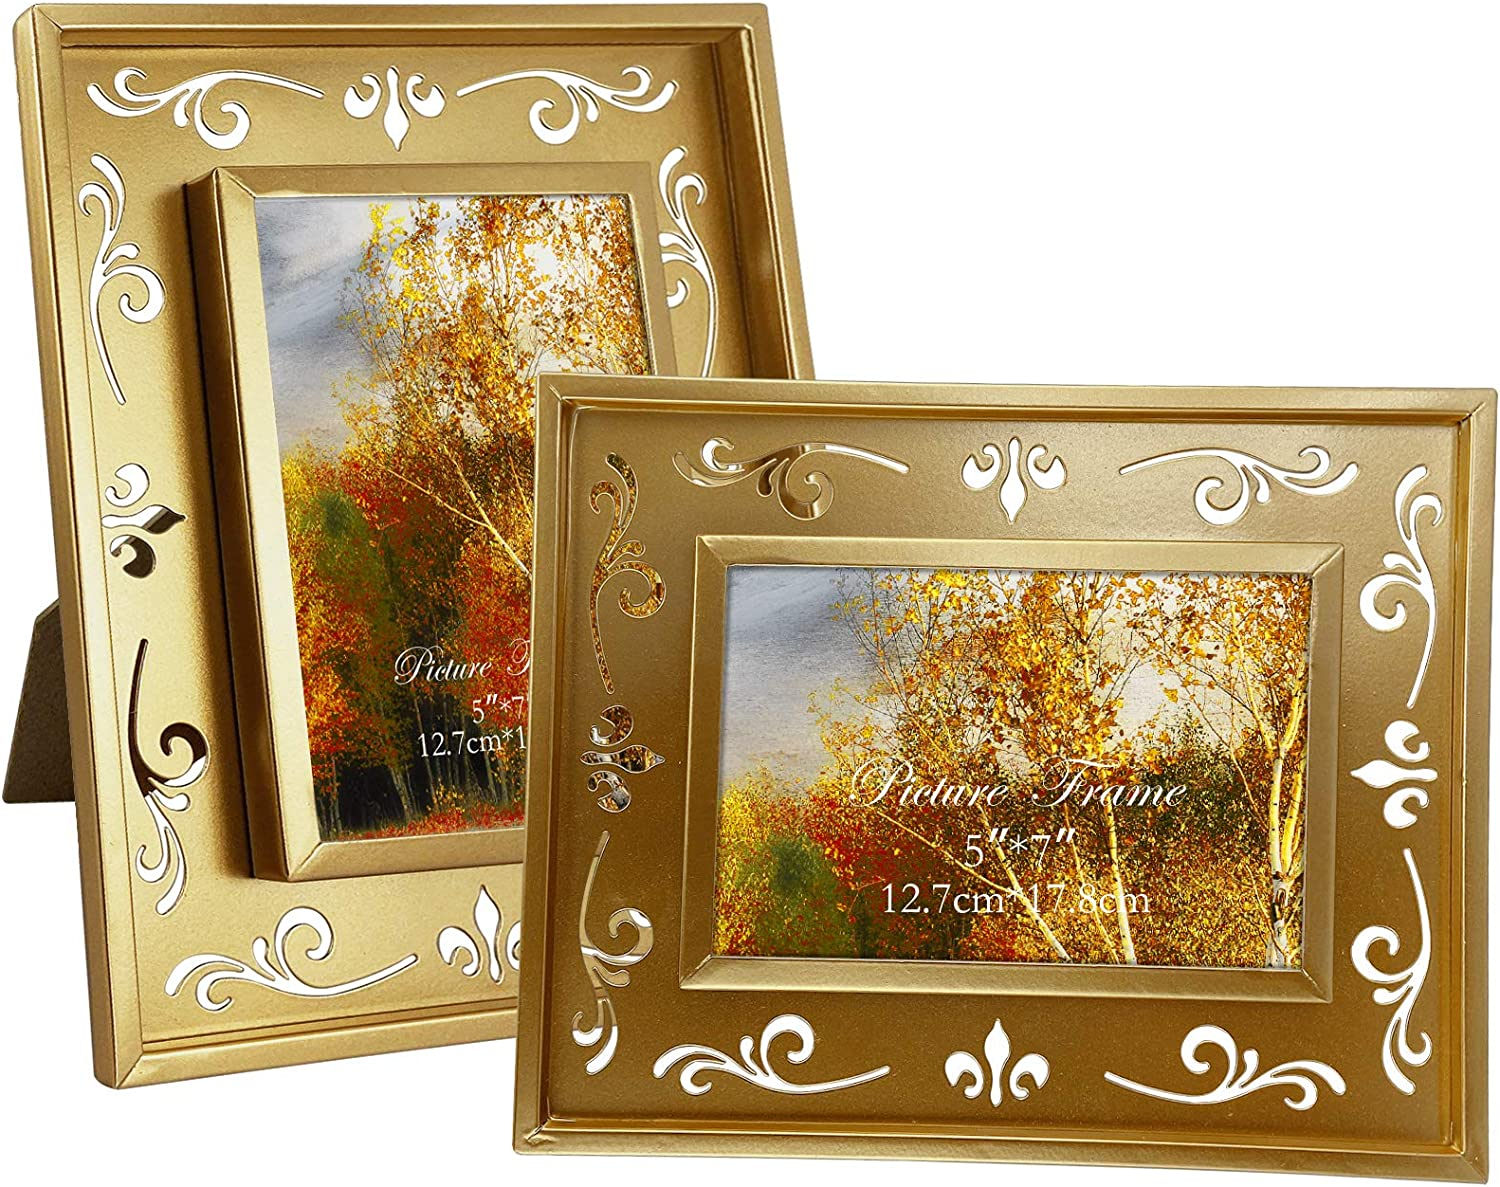 2 Pack 5x7 Picture Frames with Floral Cutout Design, Gold Metal Photo Frame for Wall and Tabletop Decor